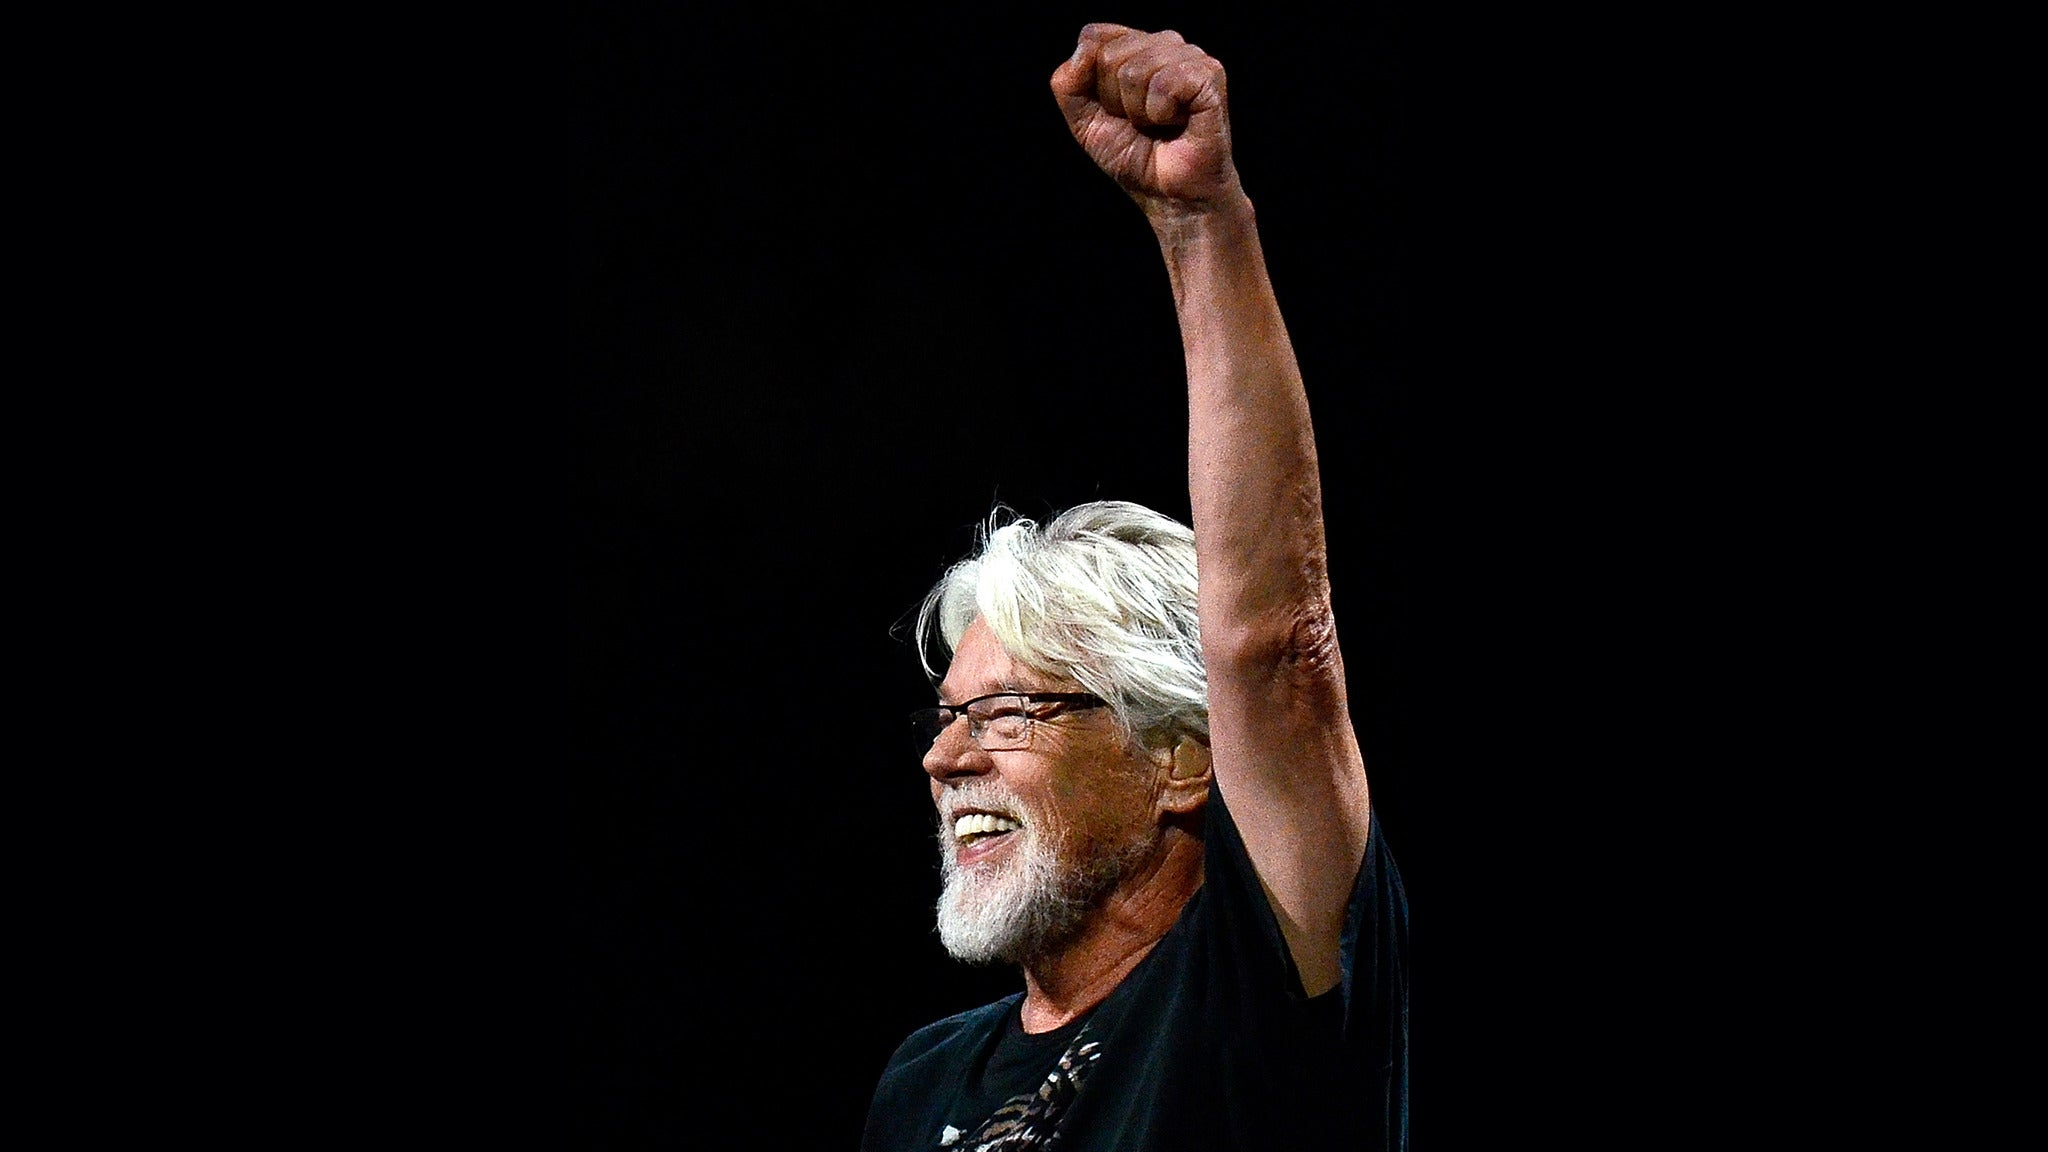 Bob Seger w/ Silver Bullet Band at Infinite Energy Center